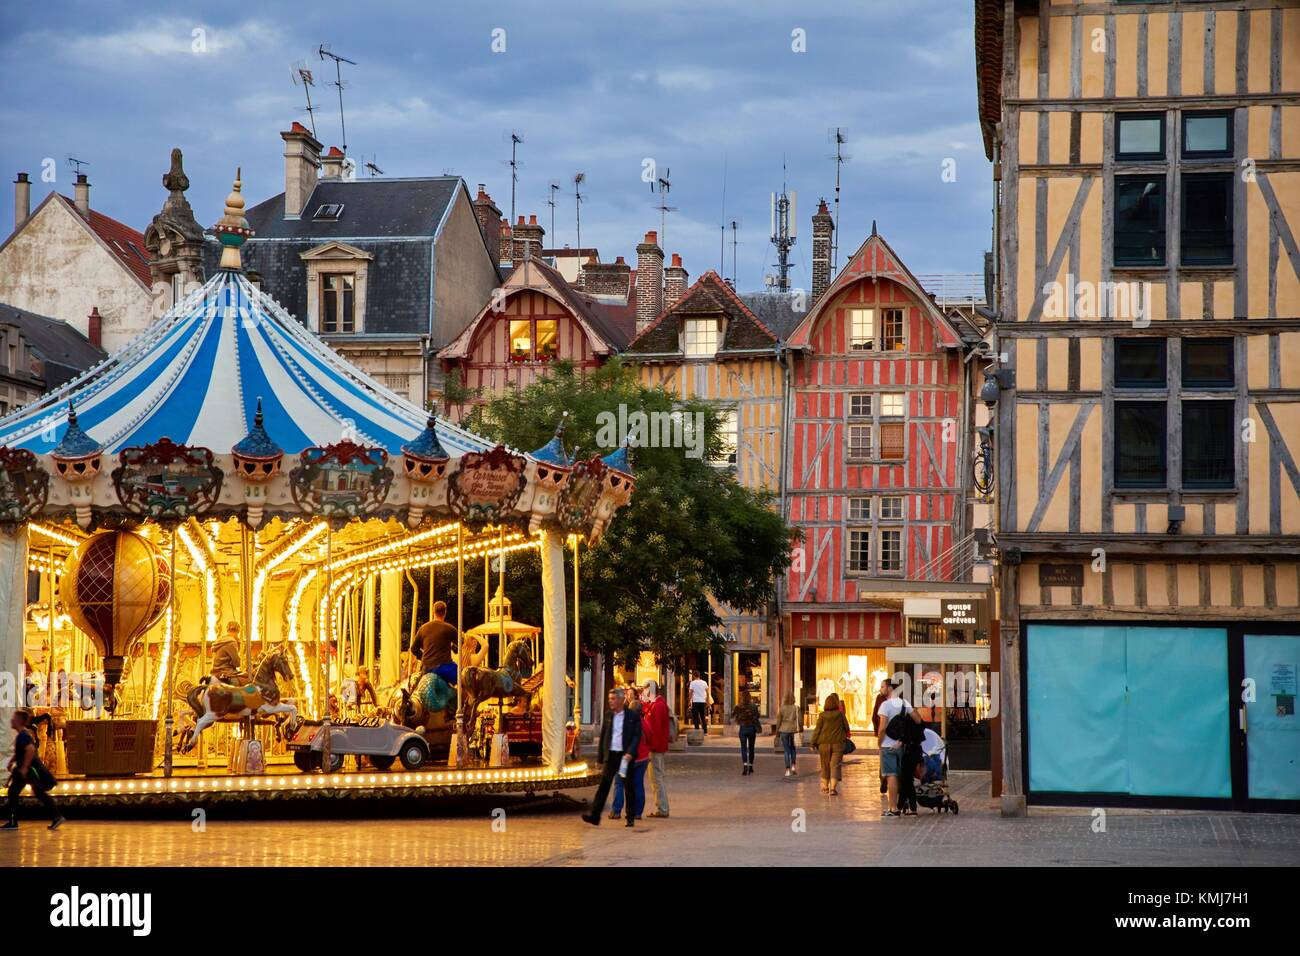 Place Foch, Rue Emile Zola, Troyes, Champagne-Ardenne Region, Aube Department, France, Europe - Stock Image